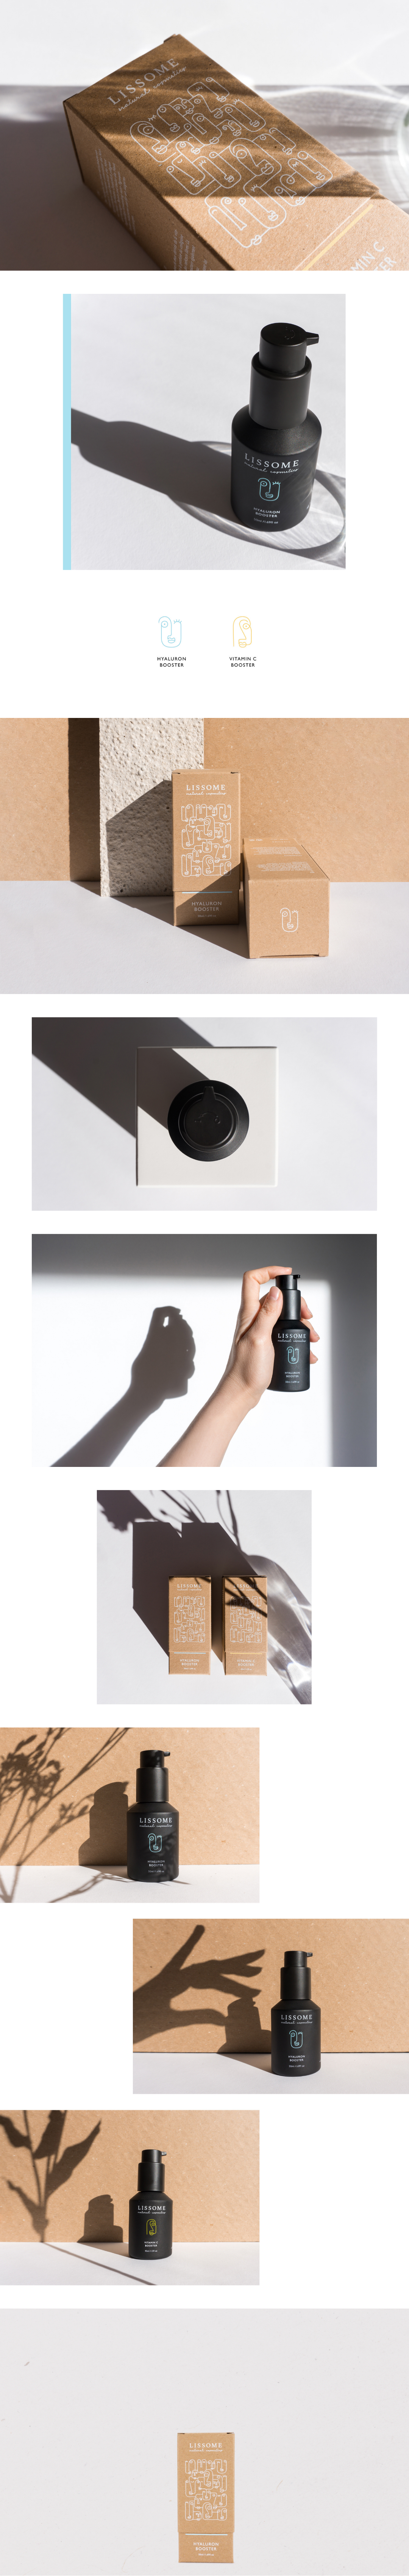 Graphic Design,Art Direction,Packaging